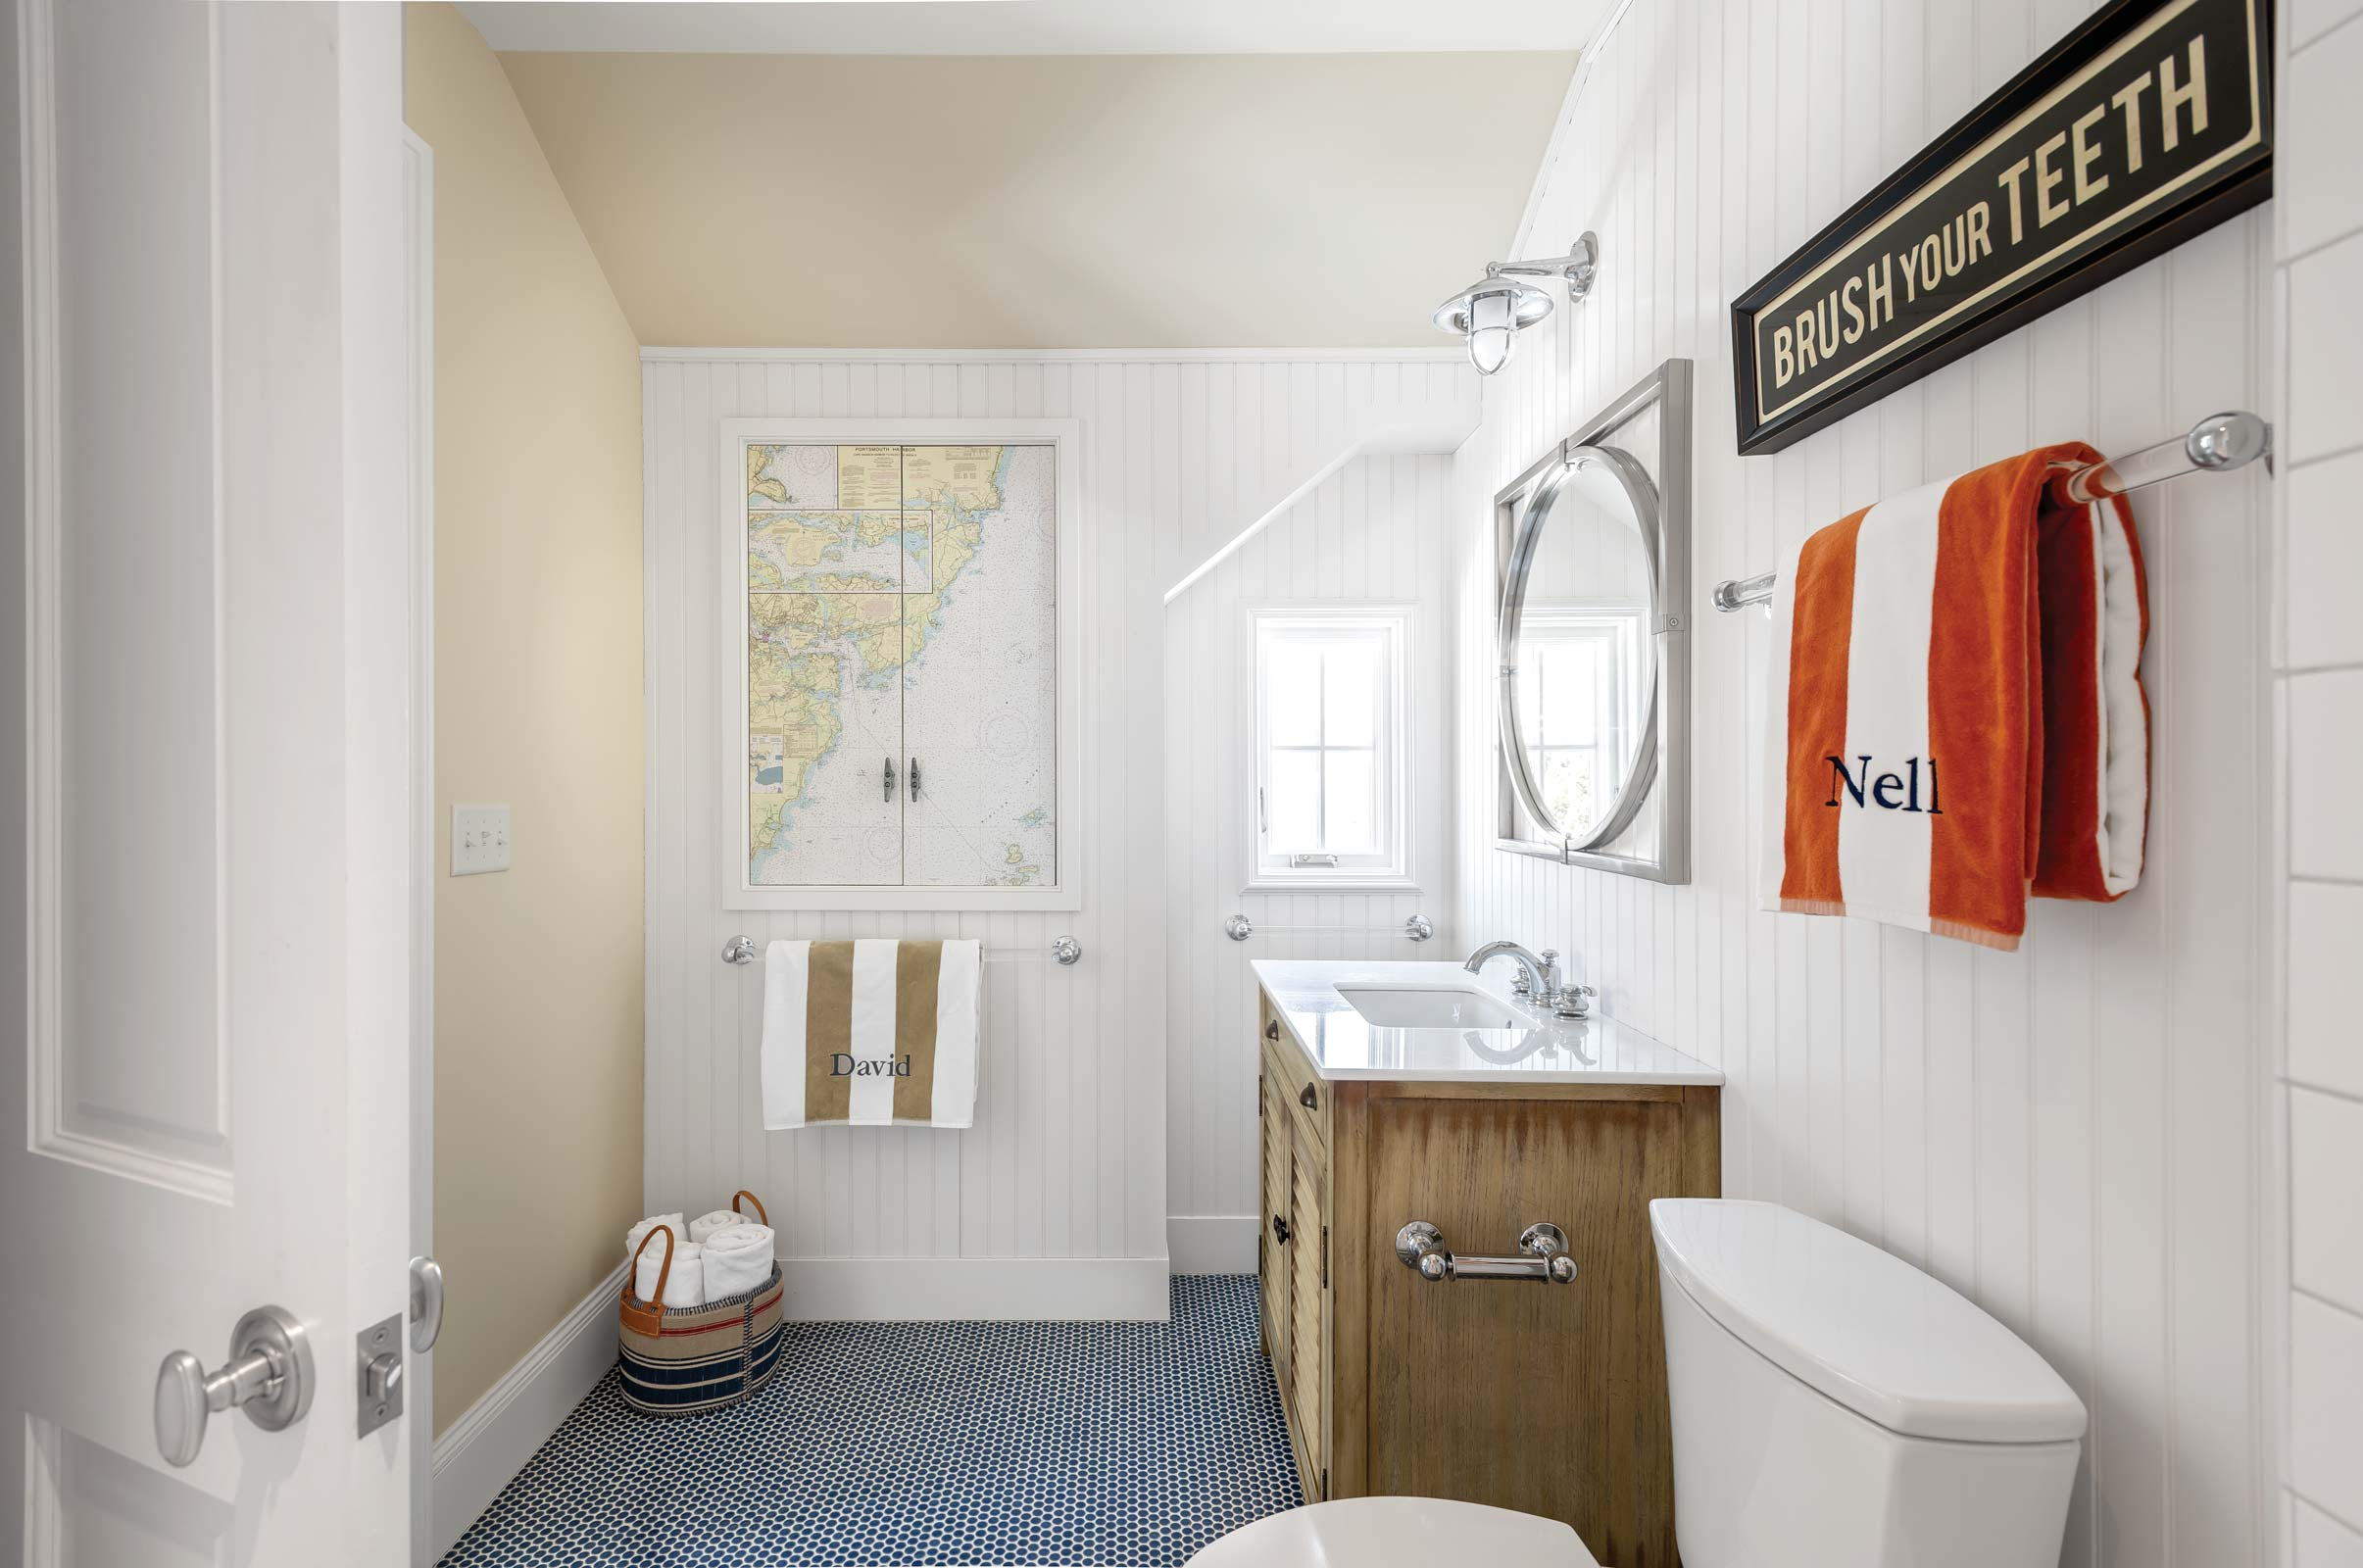 Upstairs in the new wing, a bedroom and bathroom for the Ethridges' grandchildren sports a playful nautical theme. The map on the medicine cabinet features the islands of York Harbor.